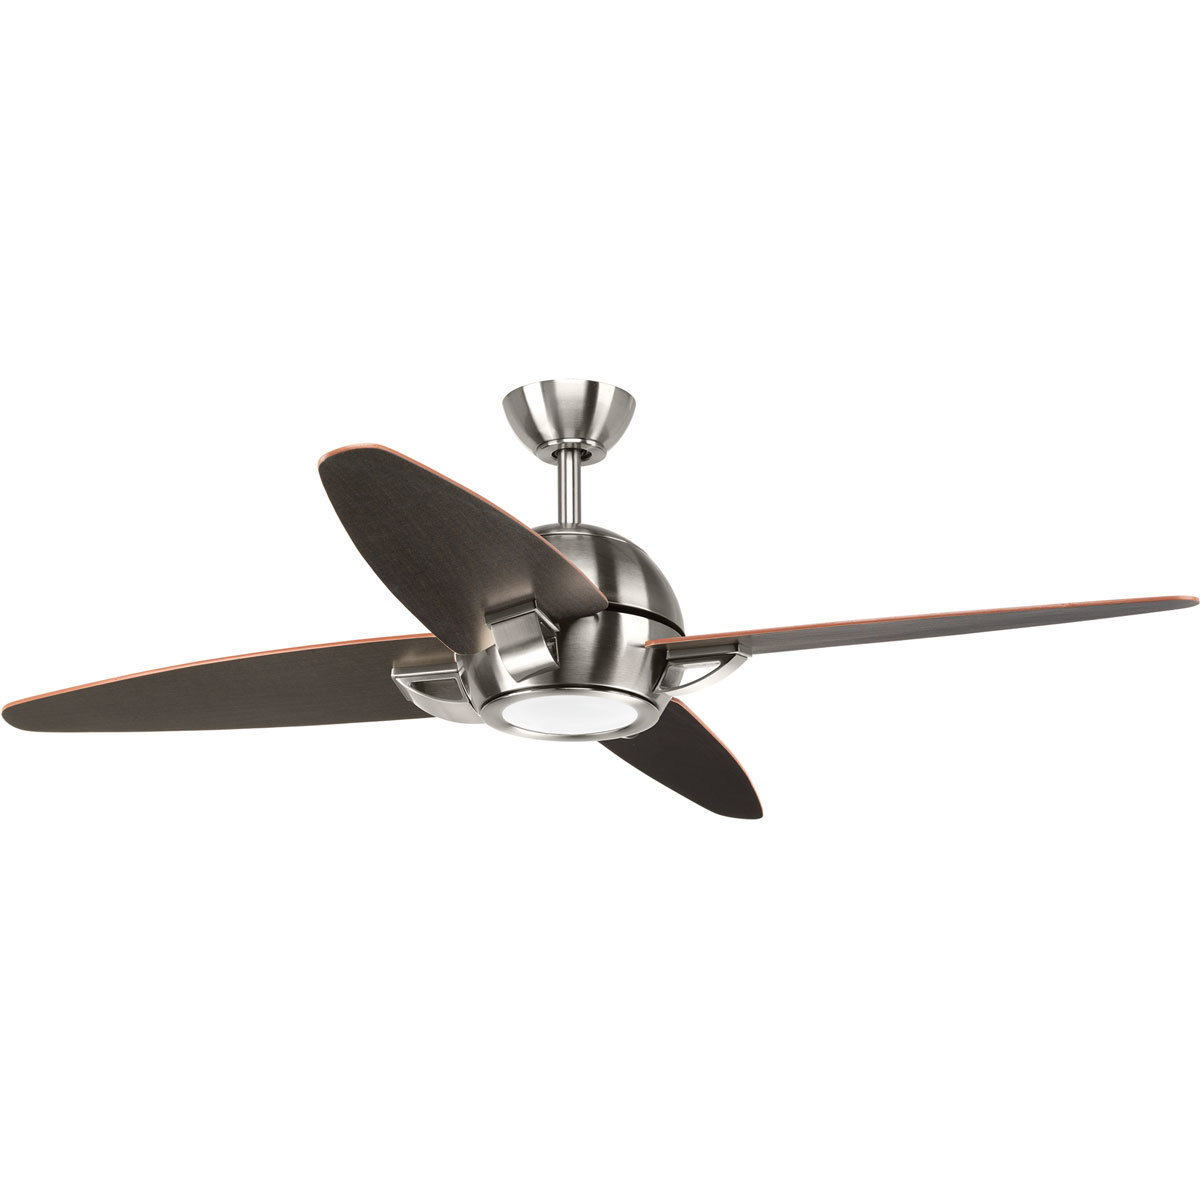 "Famous 54"" Dirks 5 Blade Led Ceiling Fan With Remote With Wilburton 5 Blade Ceiling Fans With Remote (View 19 of 20)"